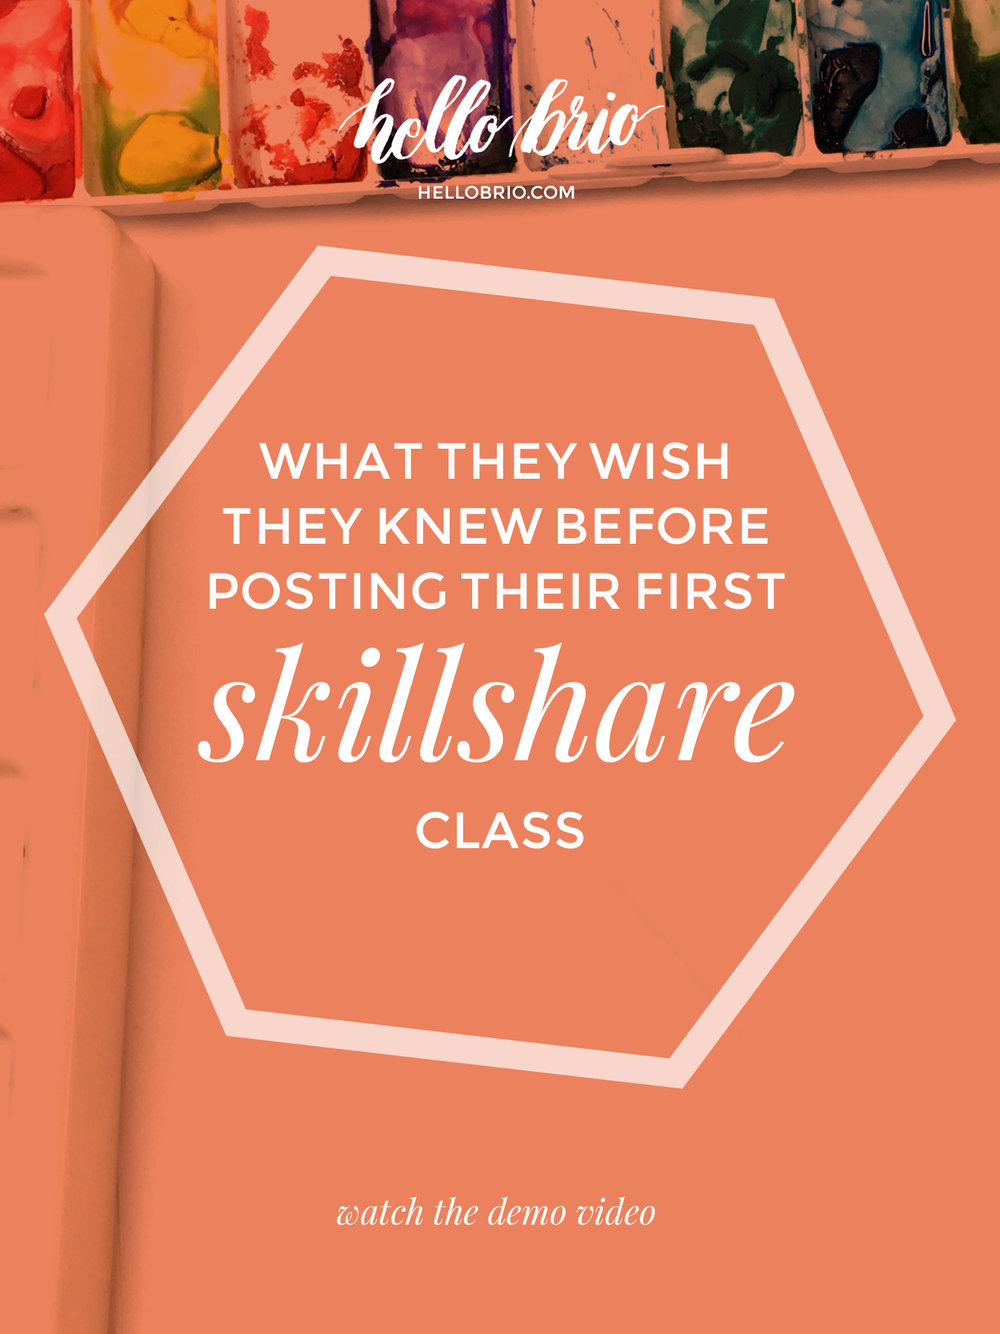 What they wish they knew before posting their first skillshare class